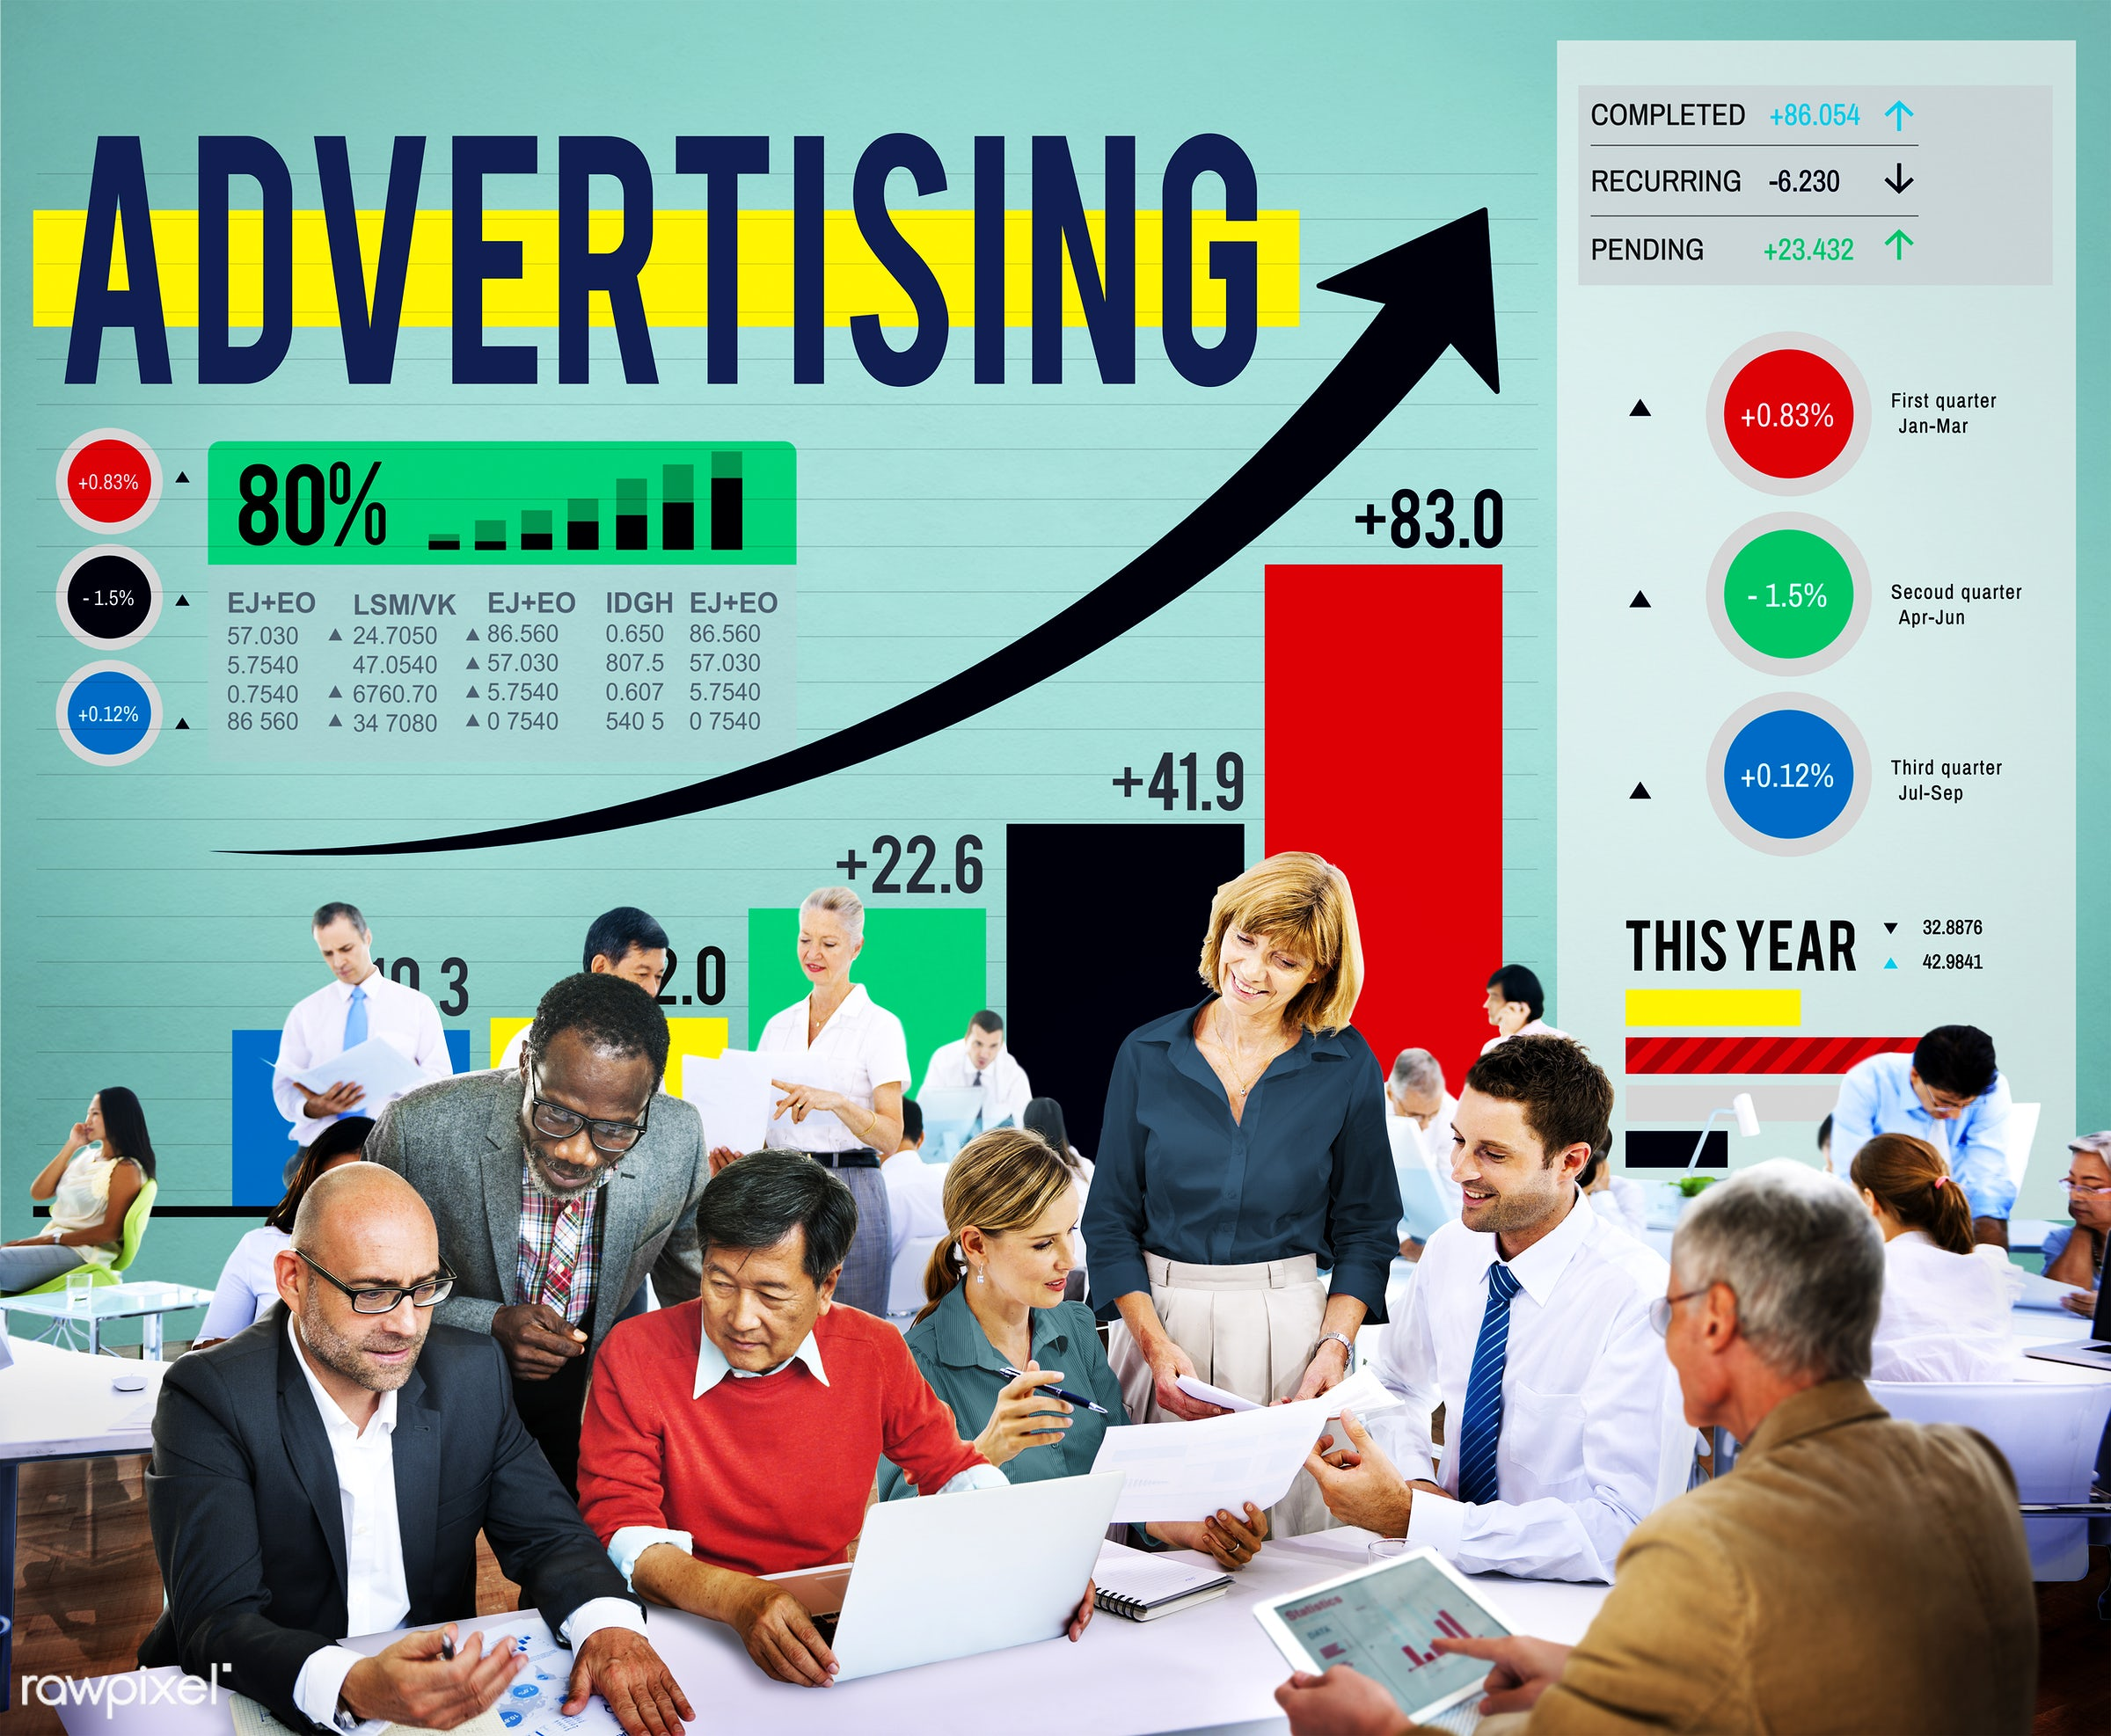 advertise, advertisement, advertising, analysis, bar graph, branding, business people, businessmen, businesswomen, campaign...